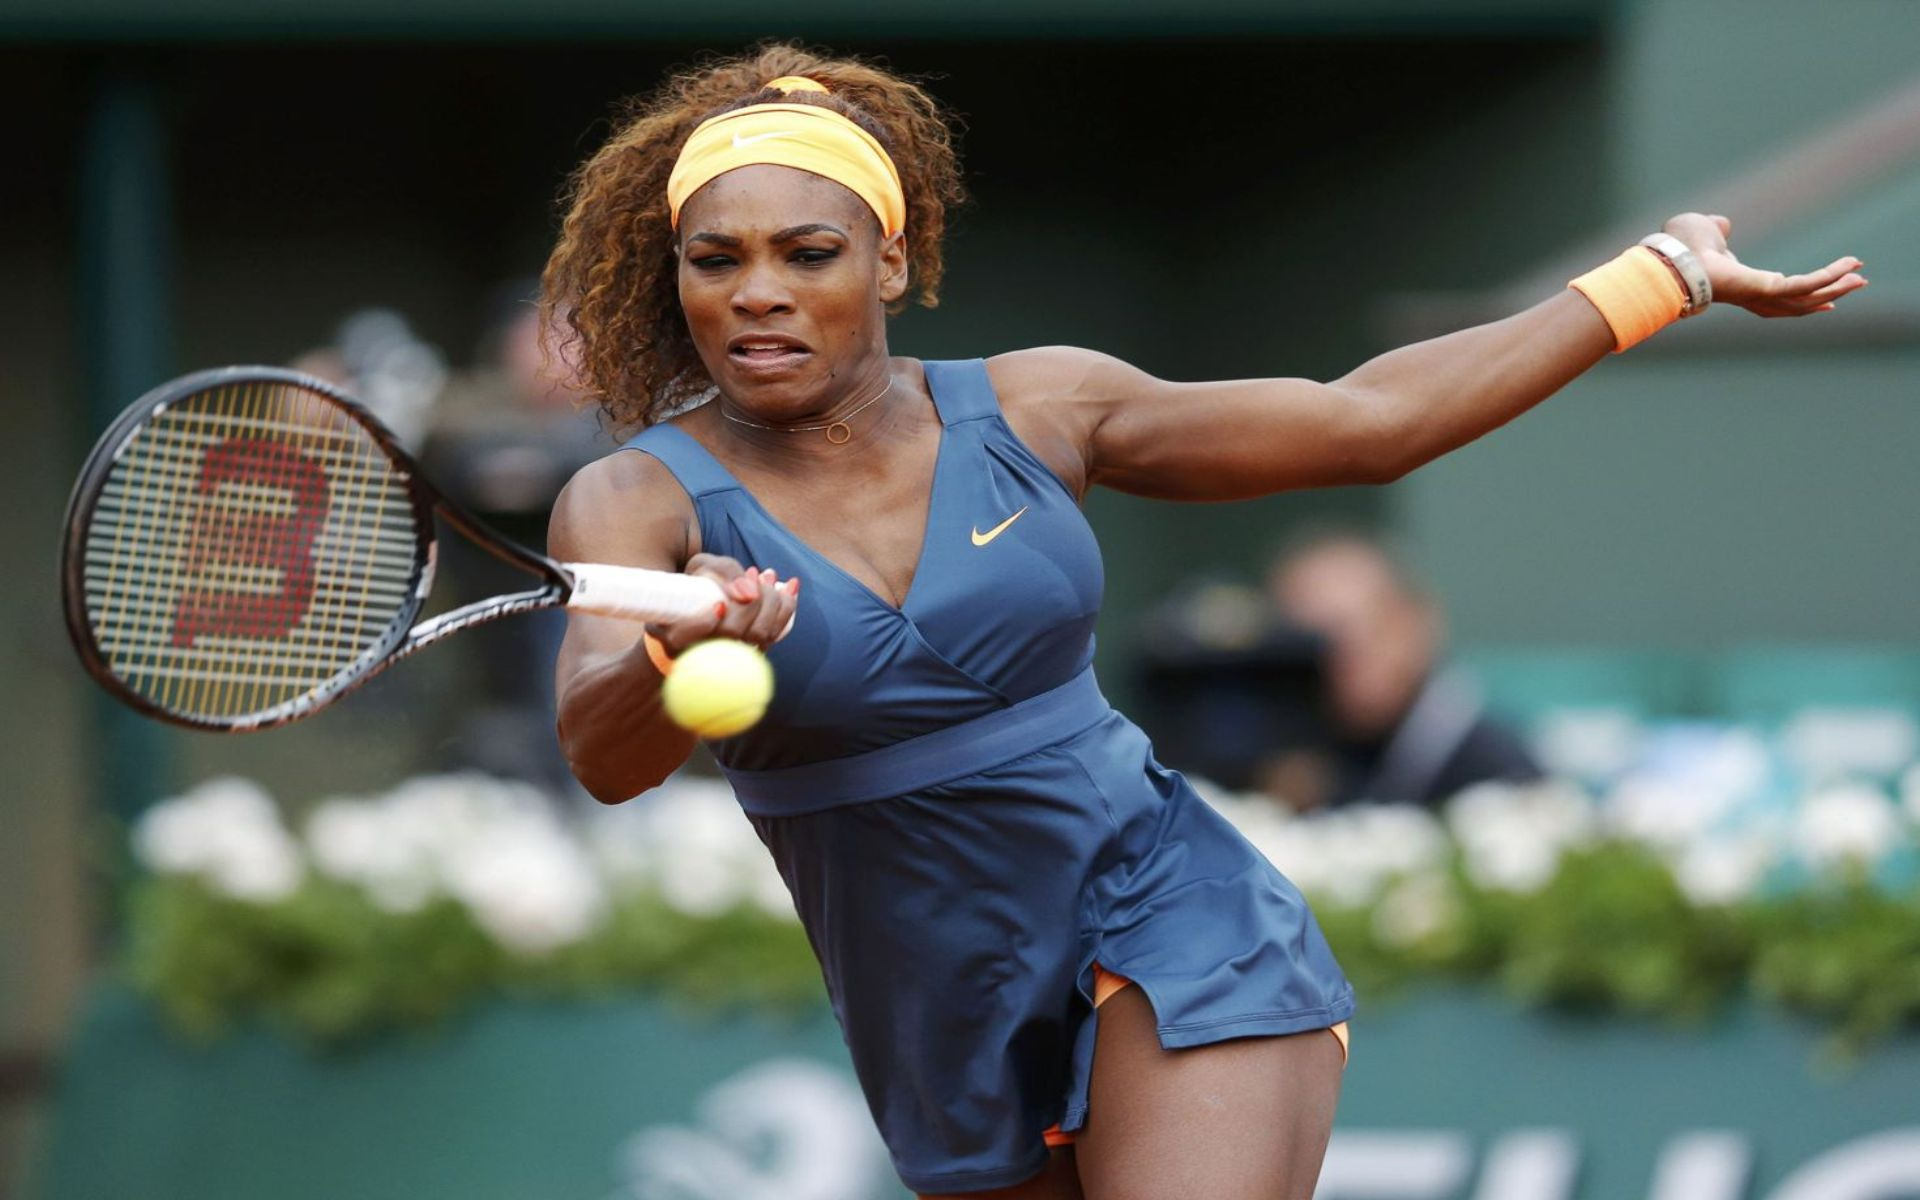 Serena Williams Wallpaper   Serena Williams Wallpaper 41815960 1920x1200